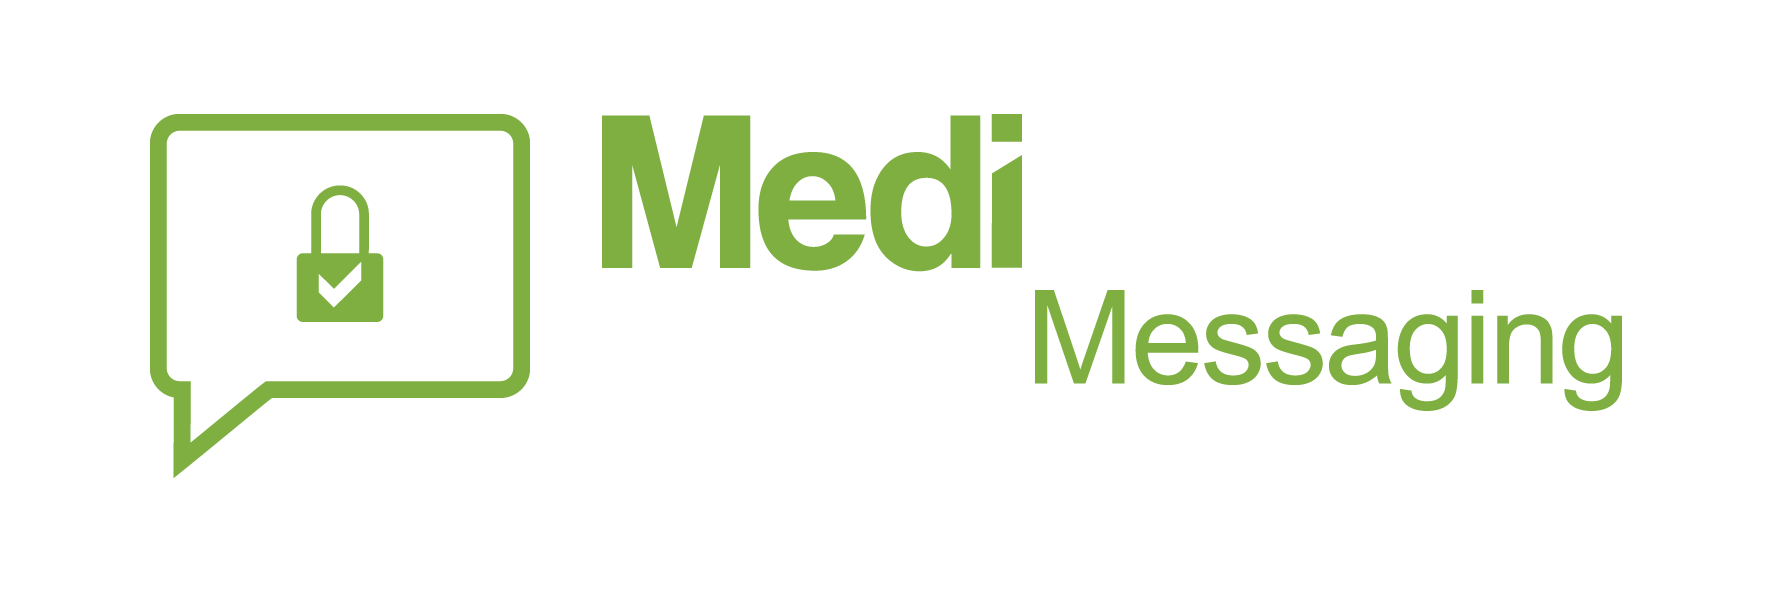 MediMobile Messaging logo